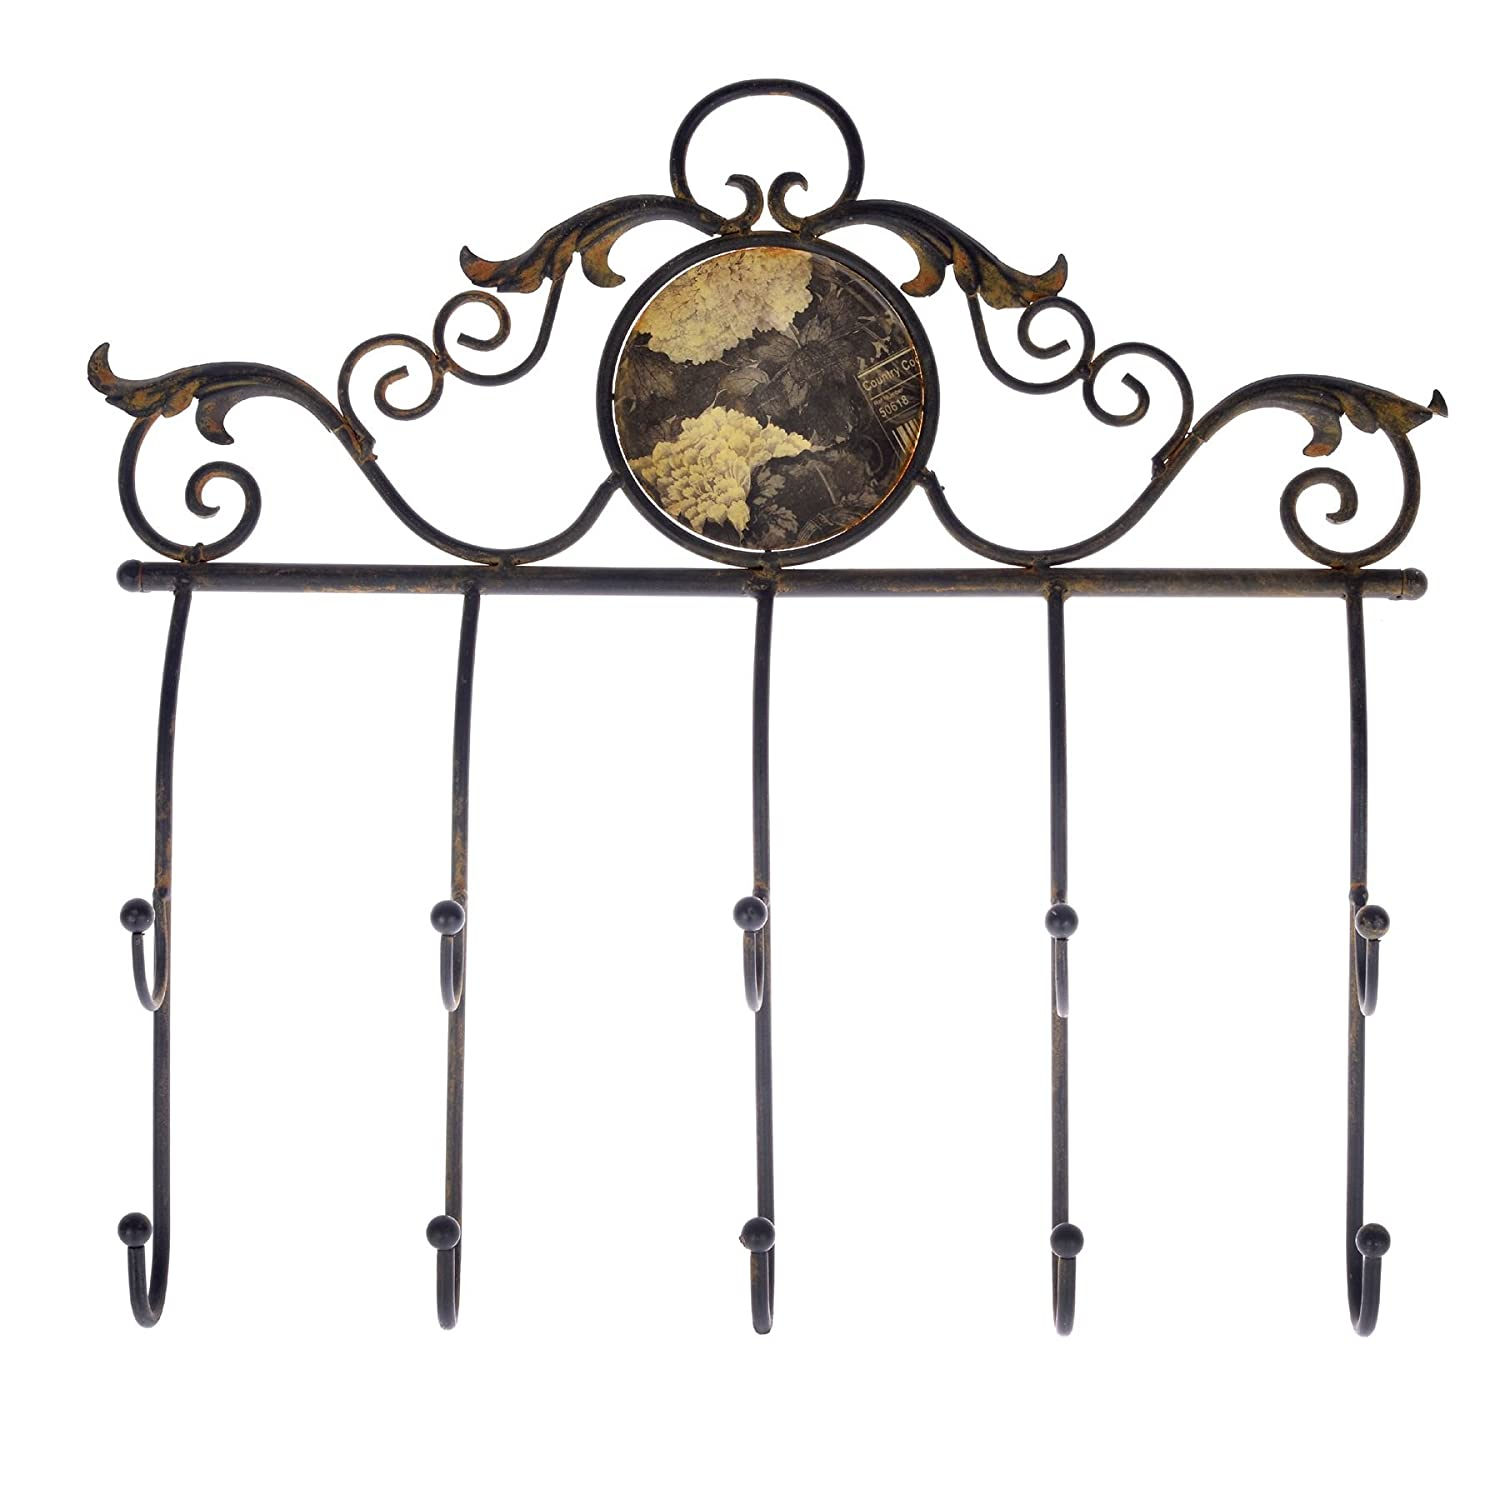 Homescapes Black Coat Hook Rack Ornate Rustic Design Suitable for Indoor and Outdoor Use